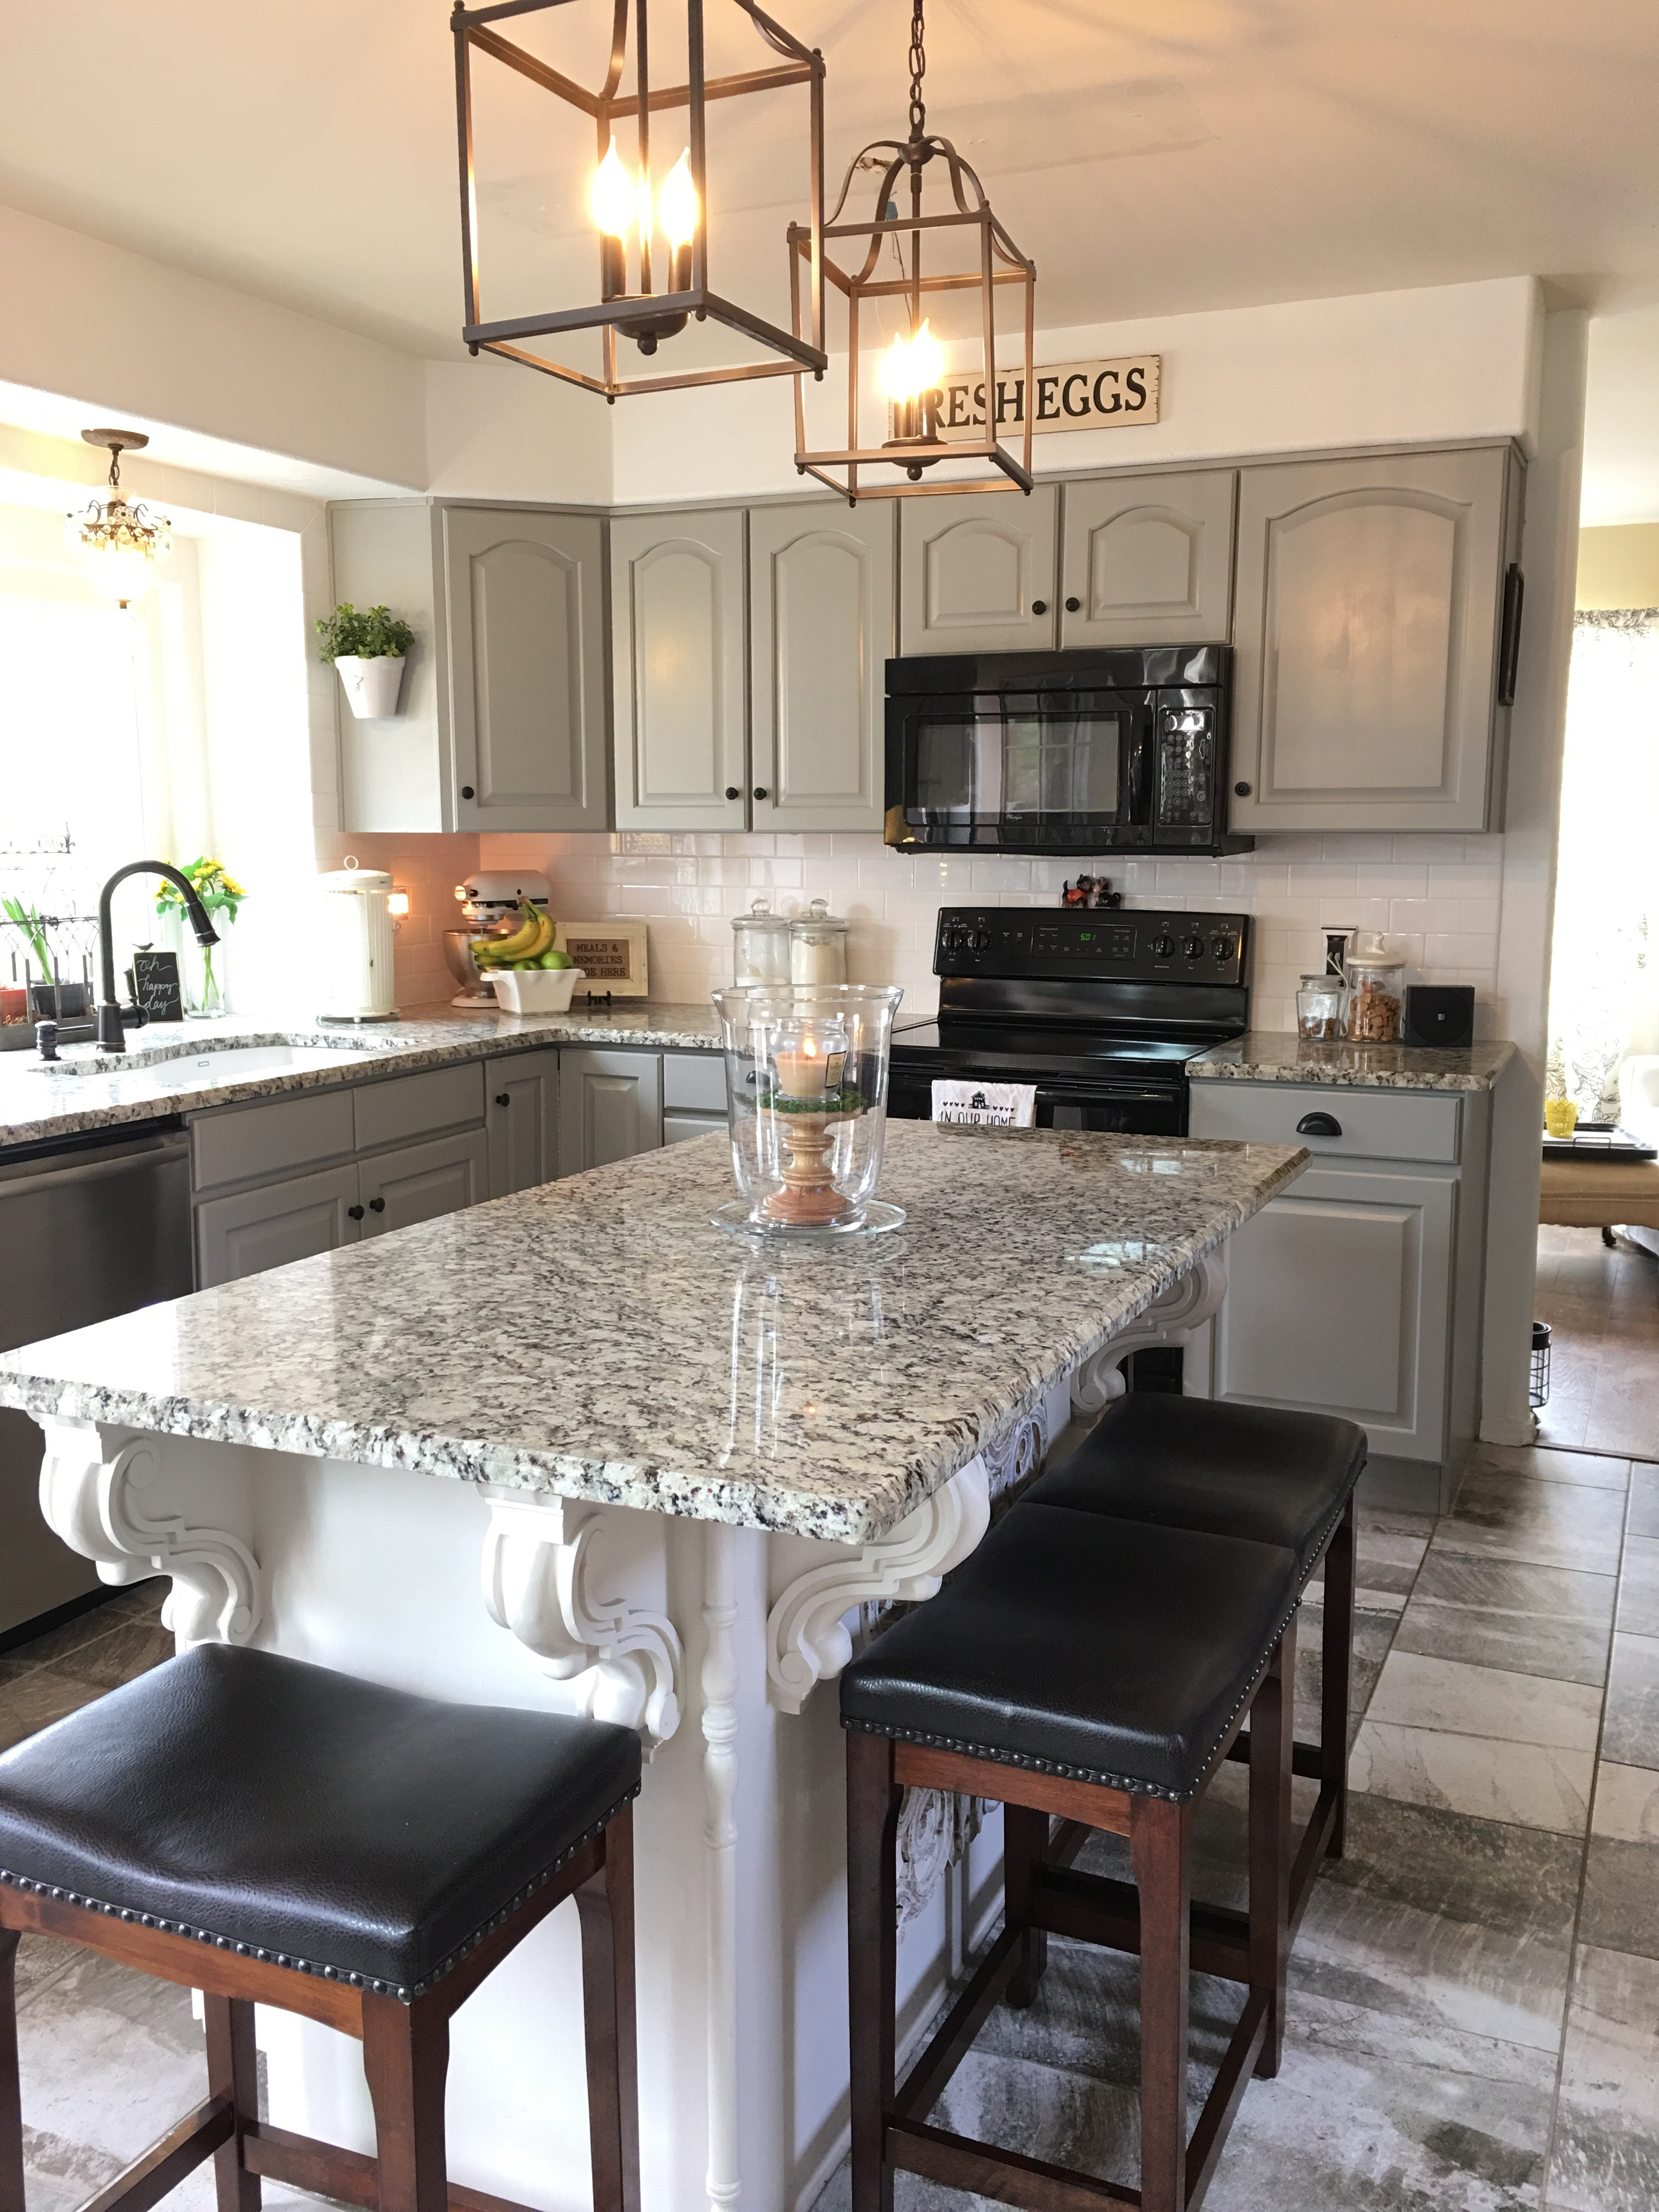 Sneak Peak! We are almost finished resurfacing all the kitchen cabinets. (More photos to follow.) Now Iu0027m thinking our current bar stools donu0027t quite work ... & Sneak Peak of Our Kitchen Renovation u2013 Carriage House Staging ...